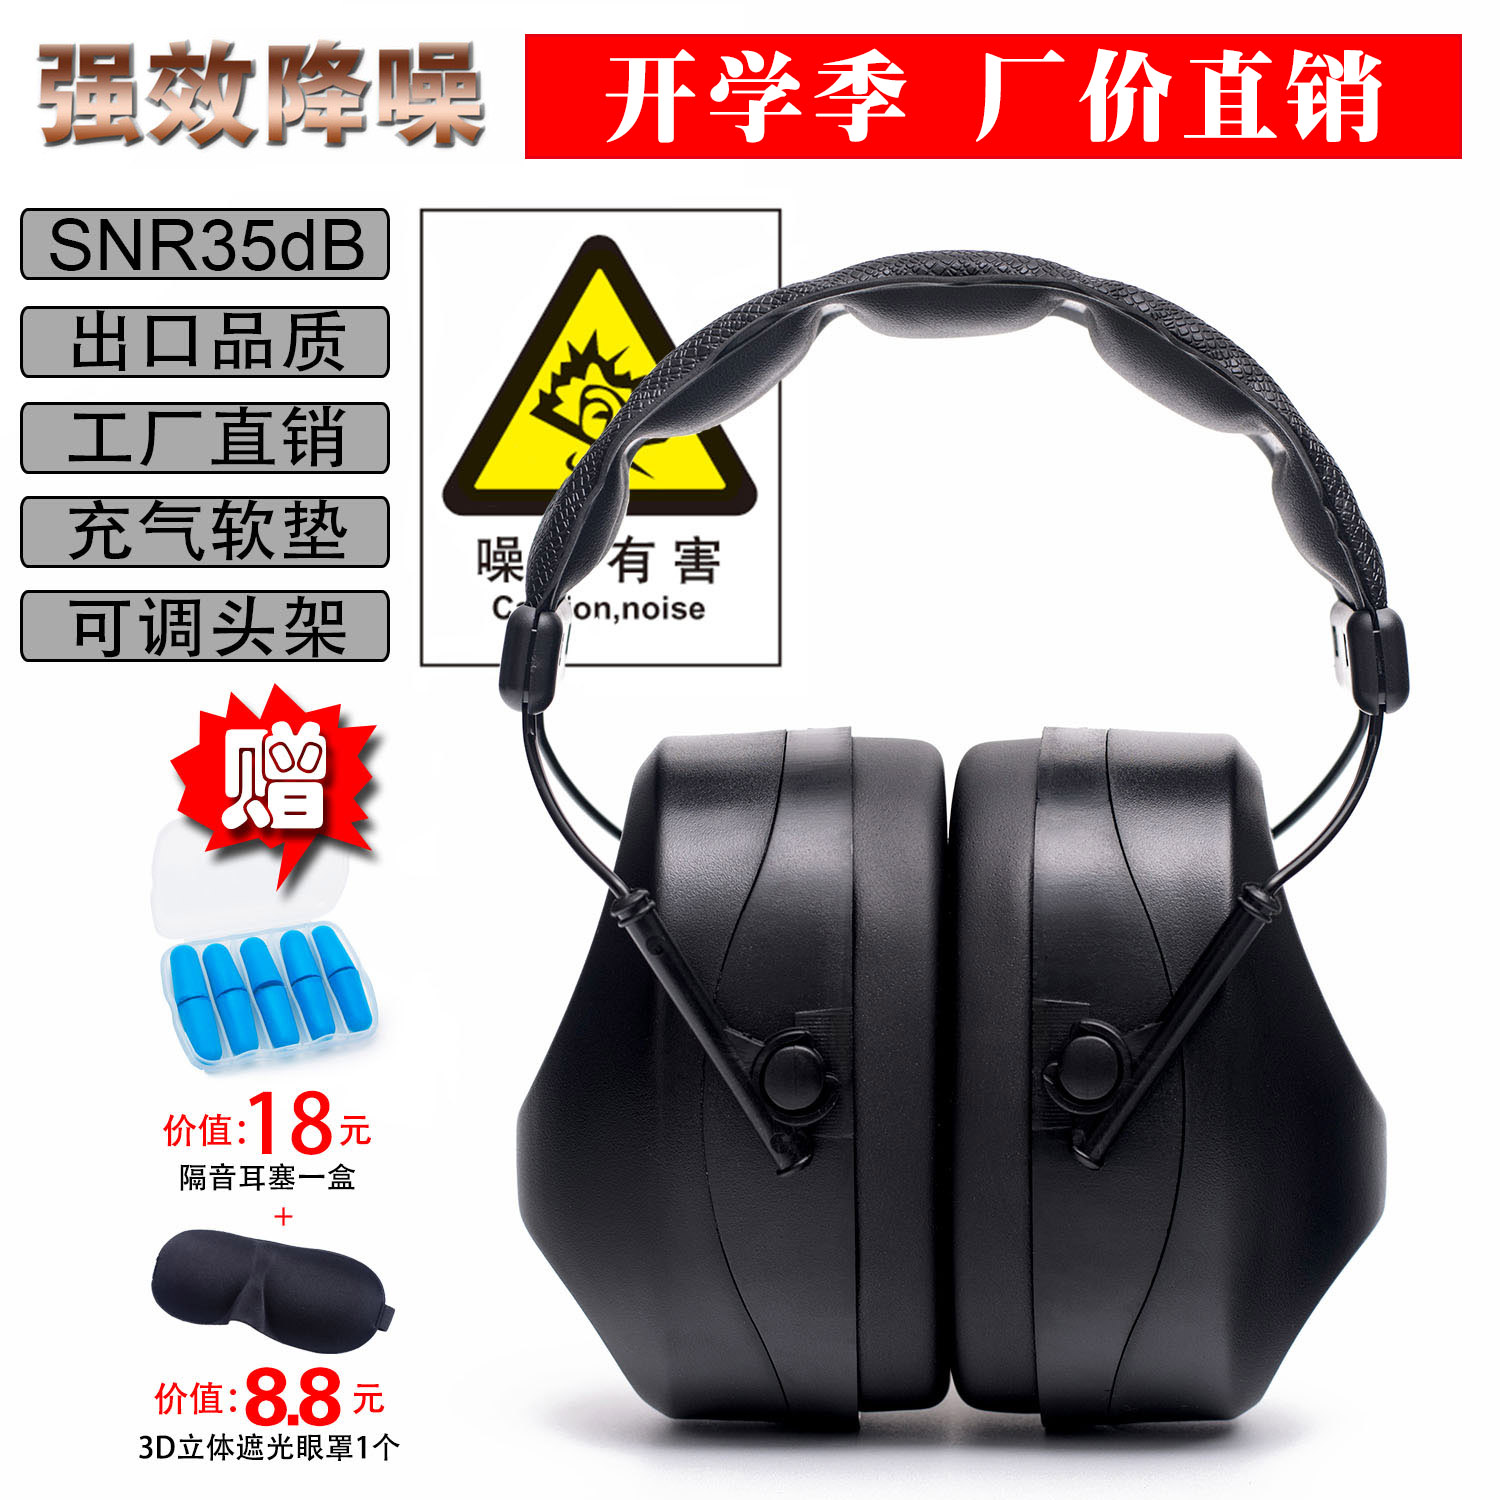 Ear Protector Anti-noise Earmuffs Noise Reduction Learning Sleep Factory Labor Insurance Ear Protector Soundproof Sound Insulation Ear Muffs